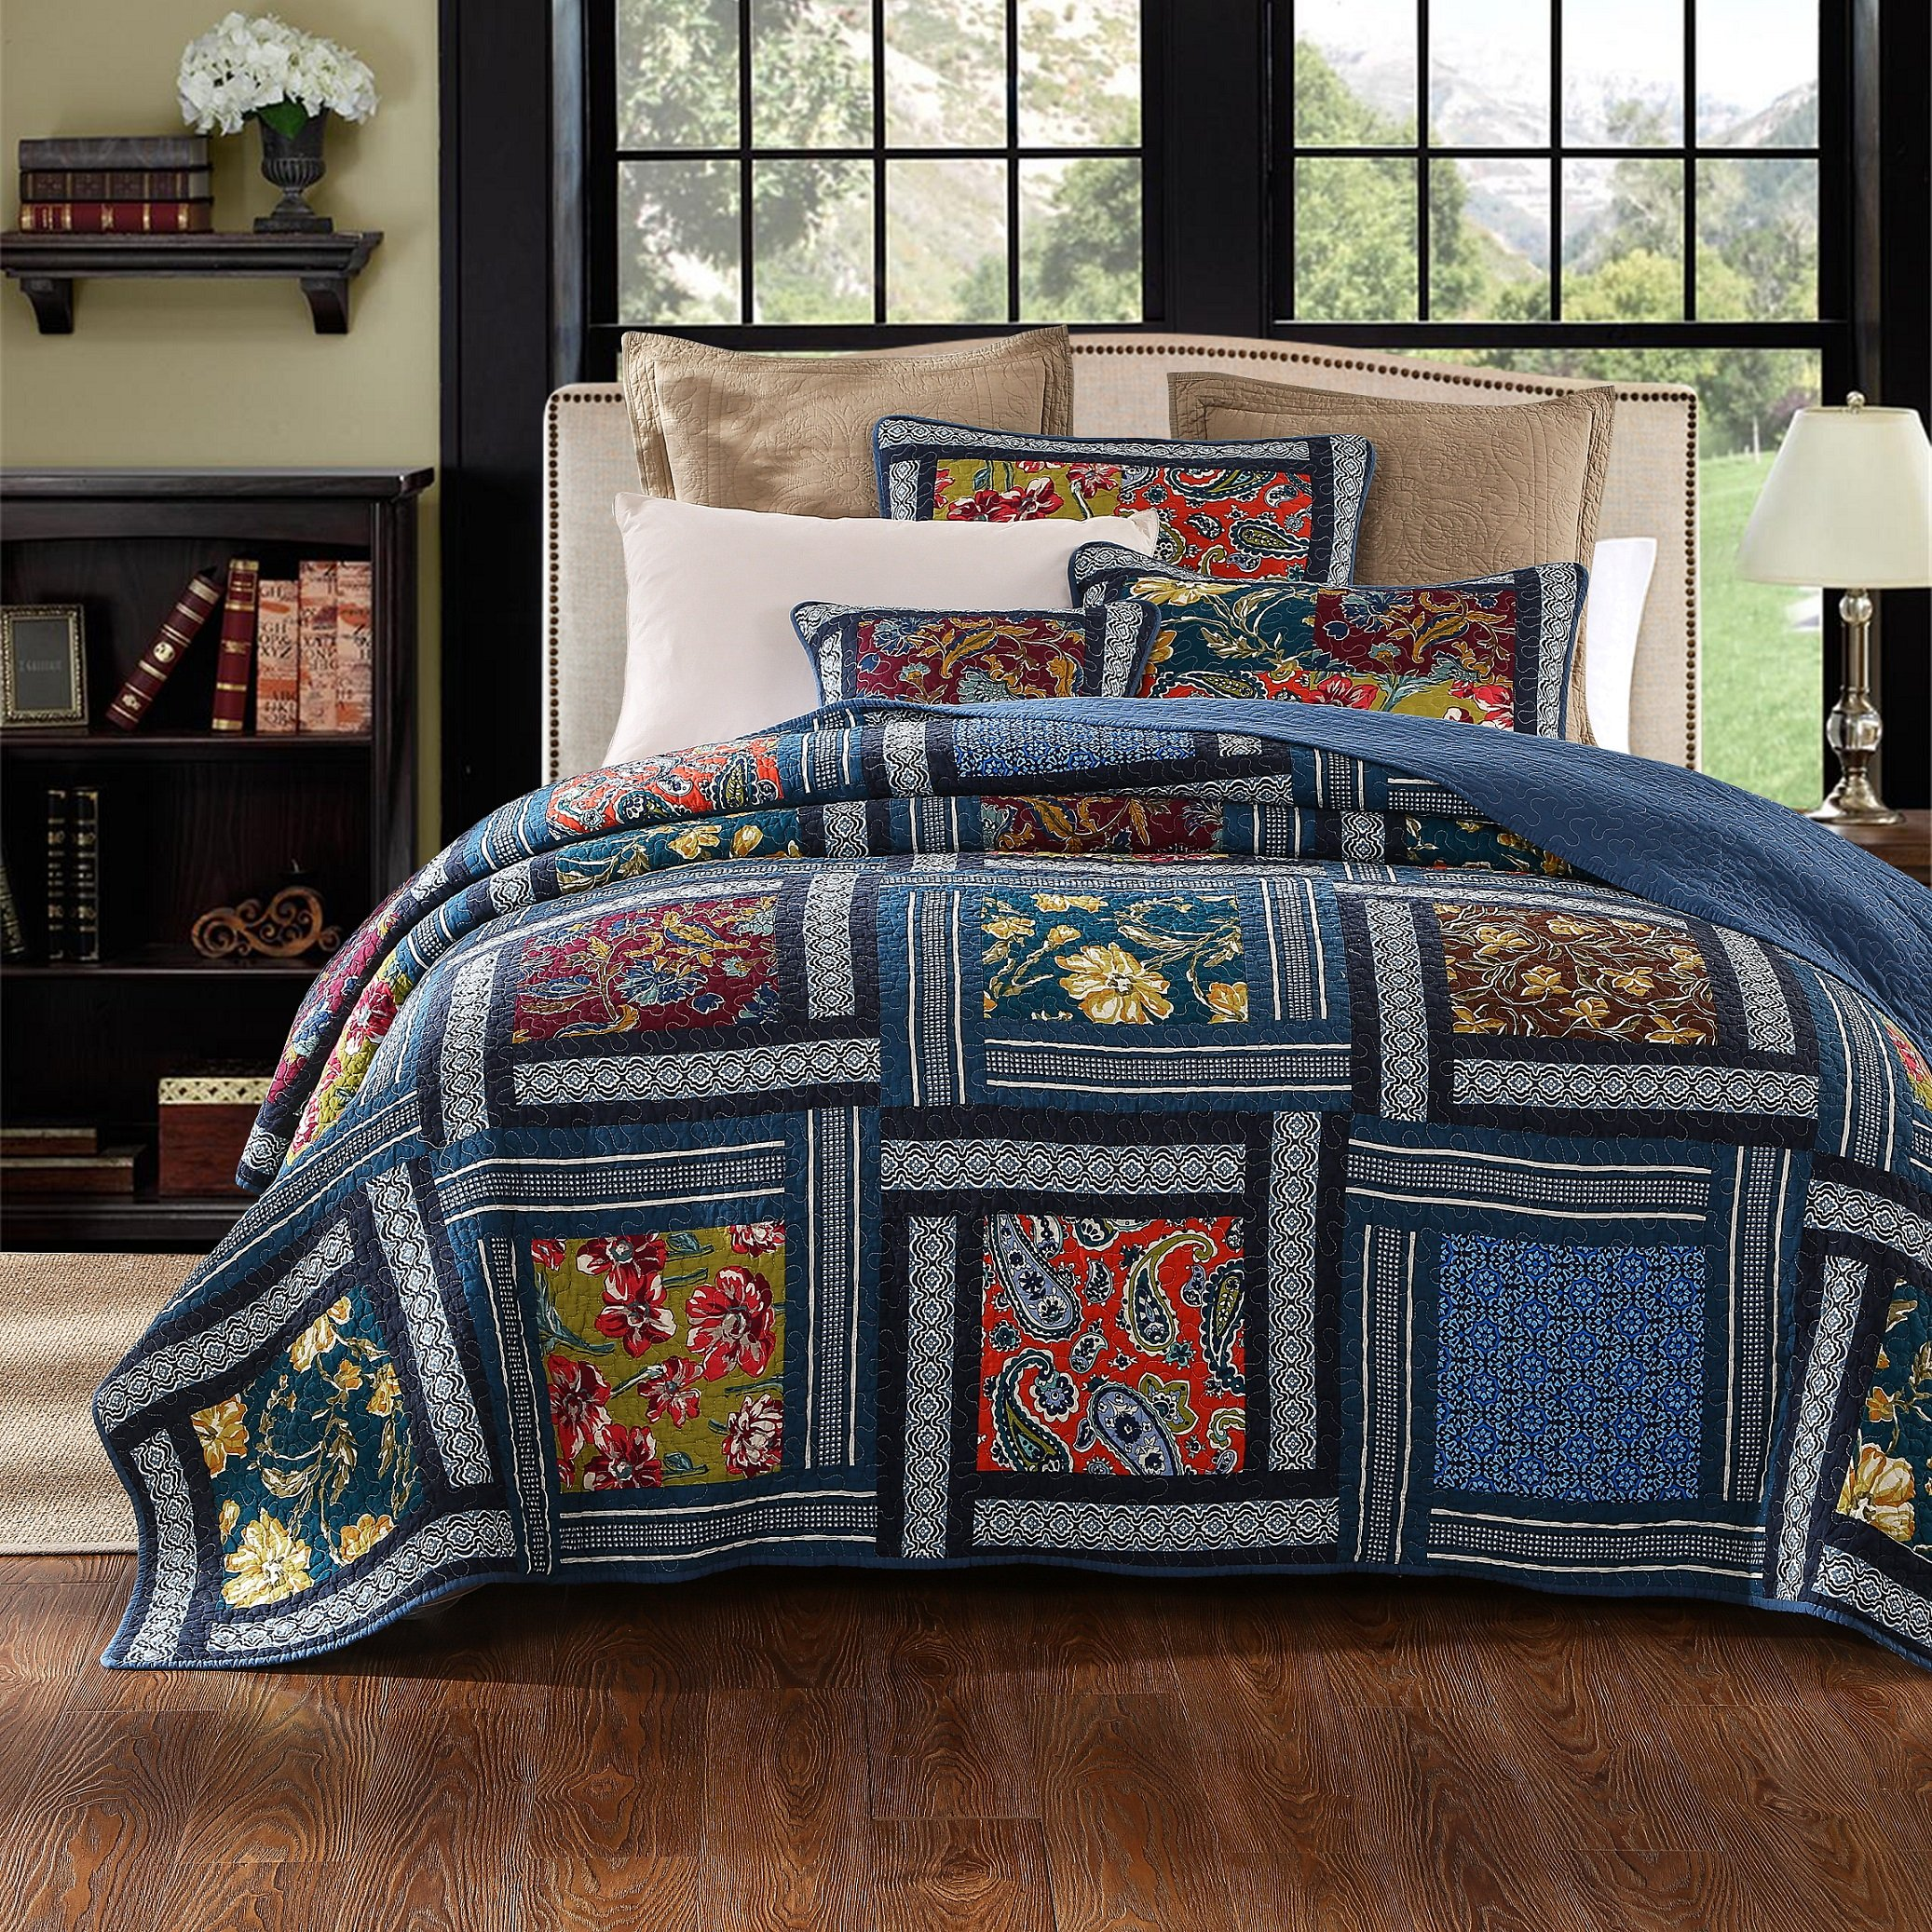 DaDa Bedding Bohemian Midnight Ocean Blue Sea Reversible Real Patchwork Quilted Bedspread Set - Dark Navy Floral Multi-Color Print - Cal King - 3-Pieces by DaDa Bedding Collection